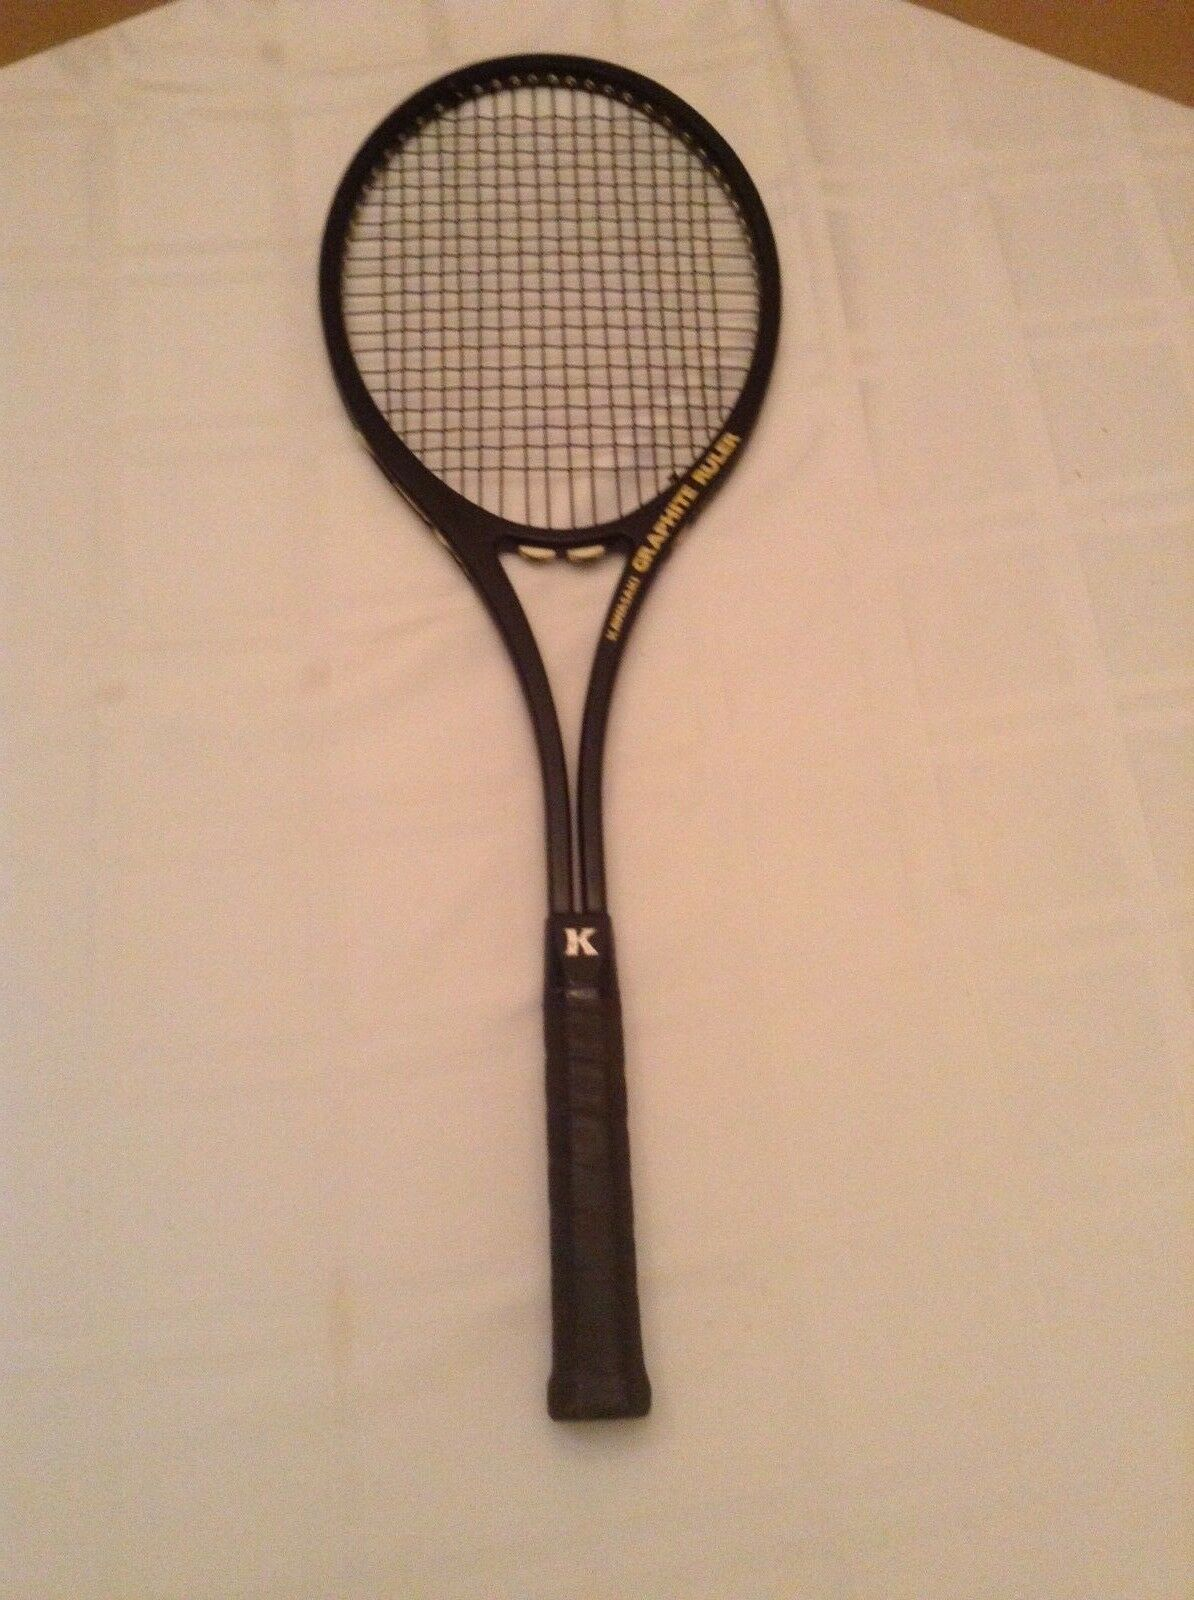 Kawasaki Graphite Ruler No. KCP-76  vintage  Tennis Raquet